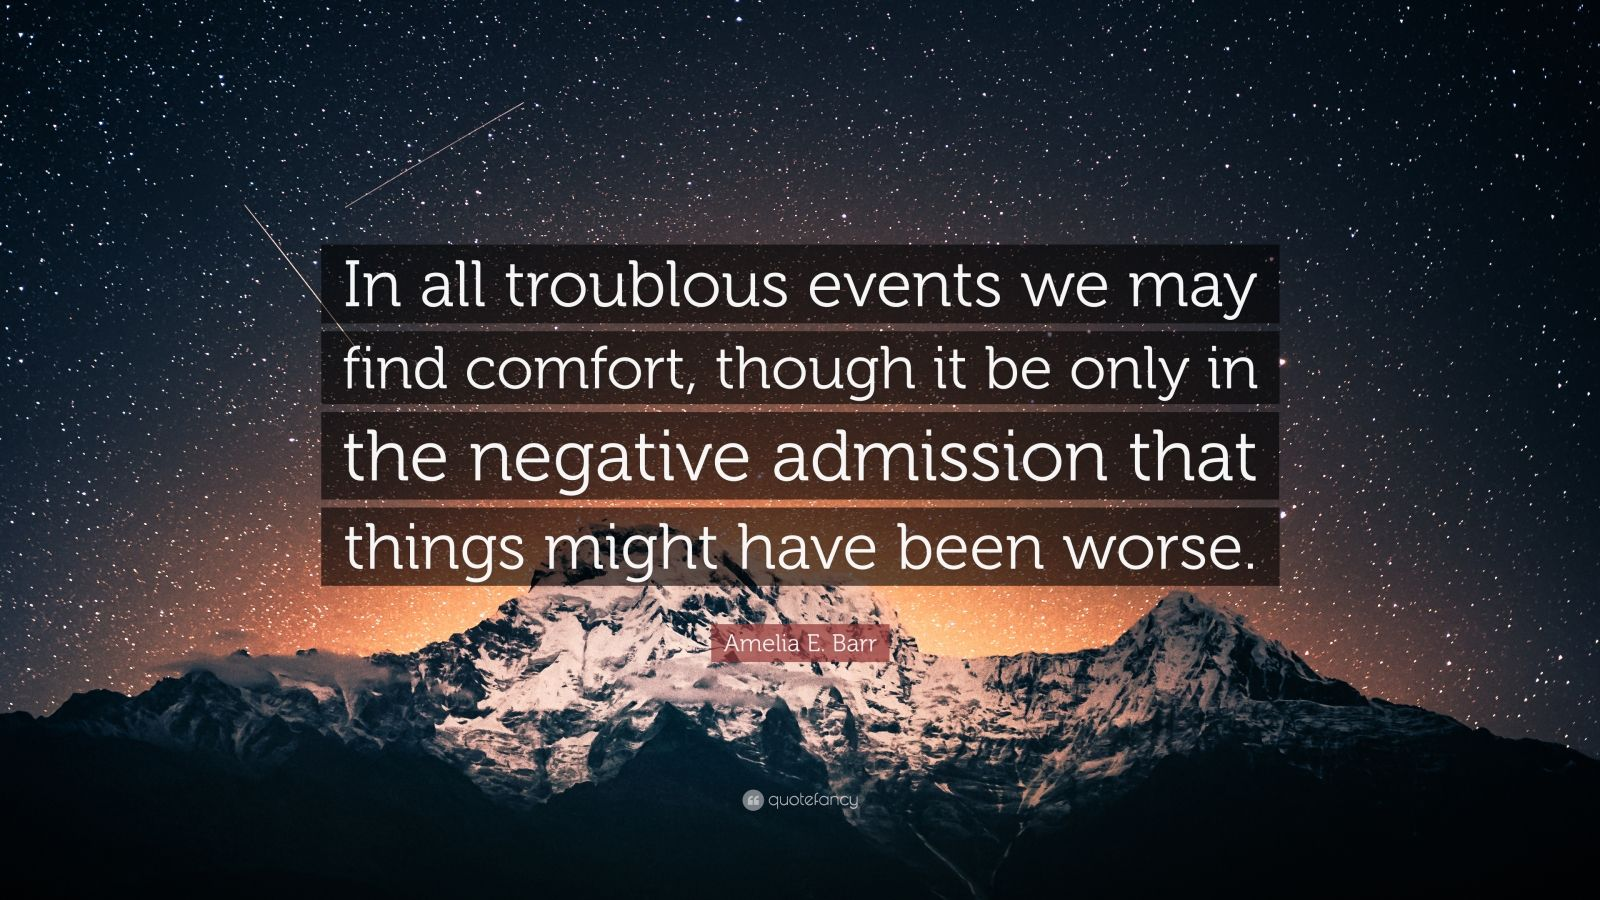 """Amelia E. Barr Quote: """"In all troublous events we may find comfort, though it be only in the negative admission that things might have been worse."""""""